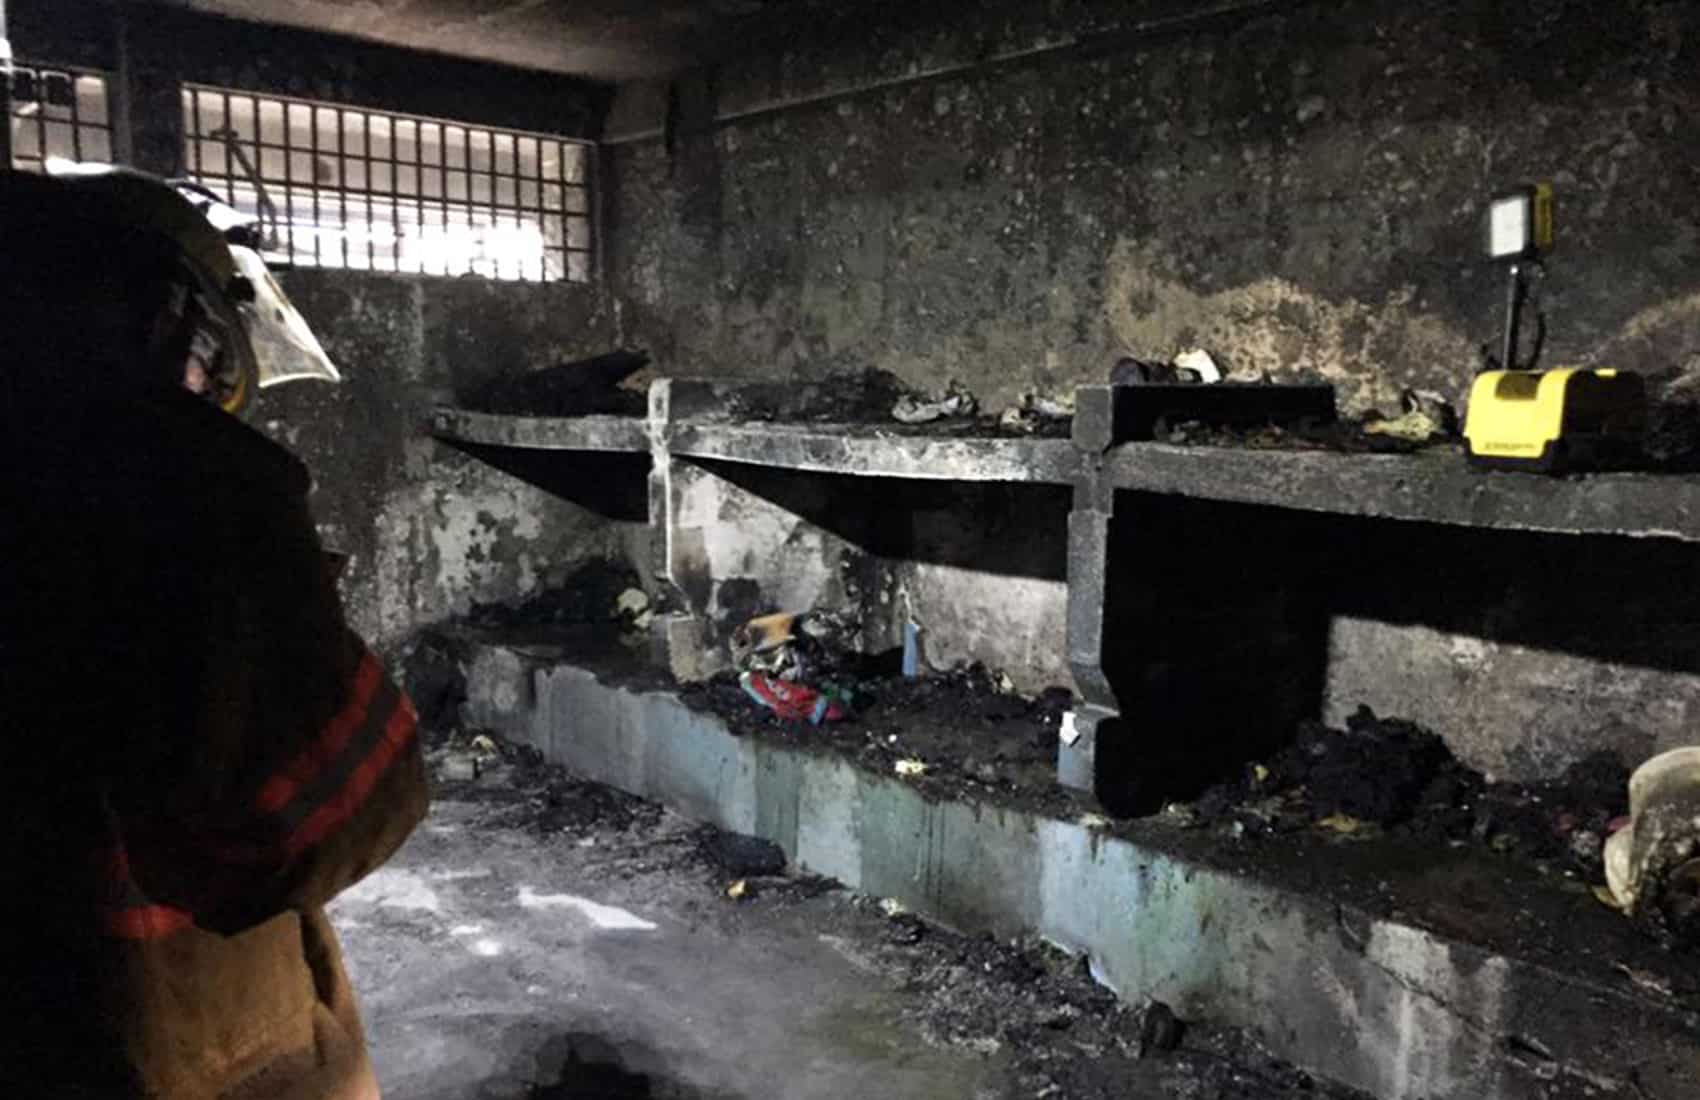 Fire at San Sebastián Prison. March 30, 2017.